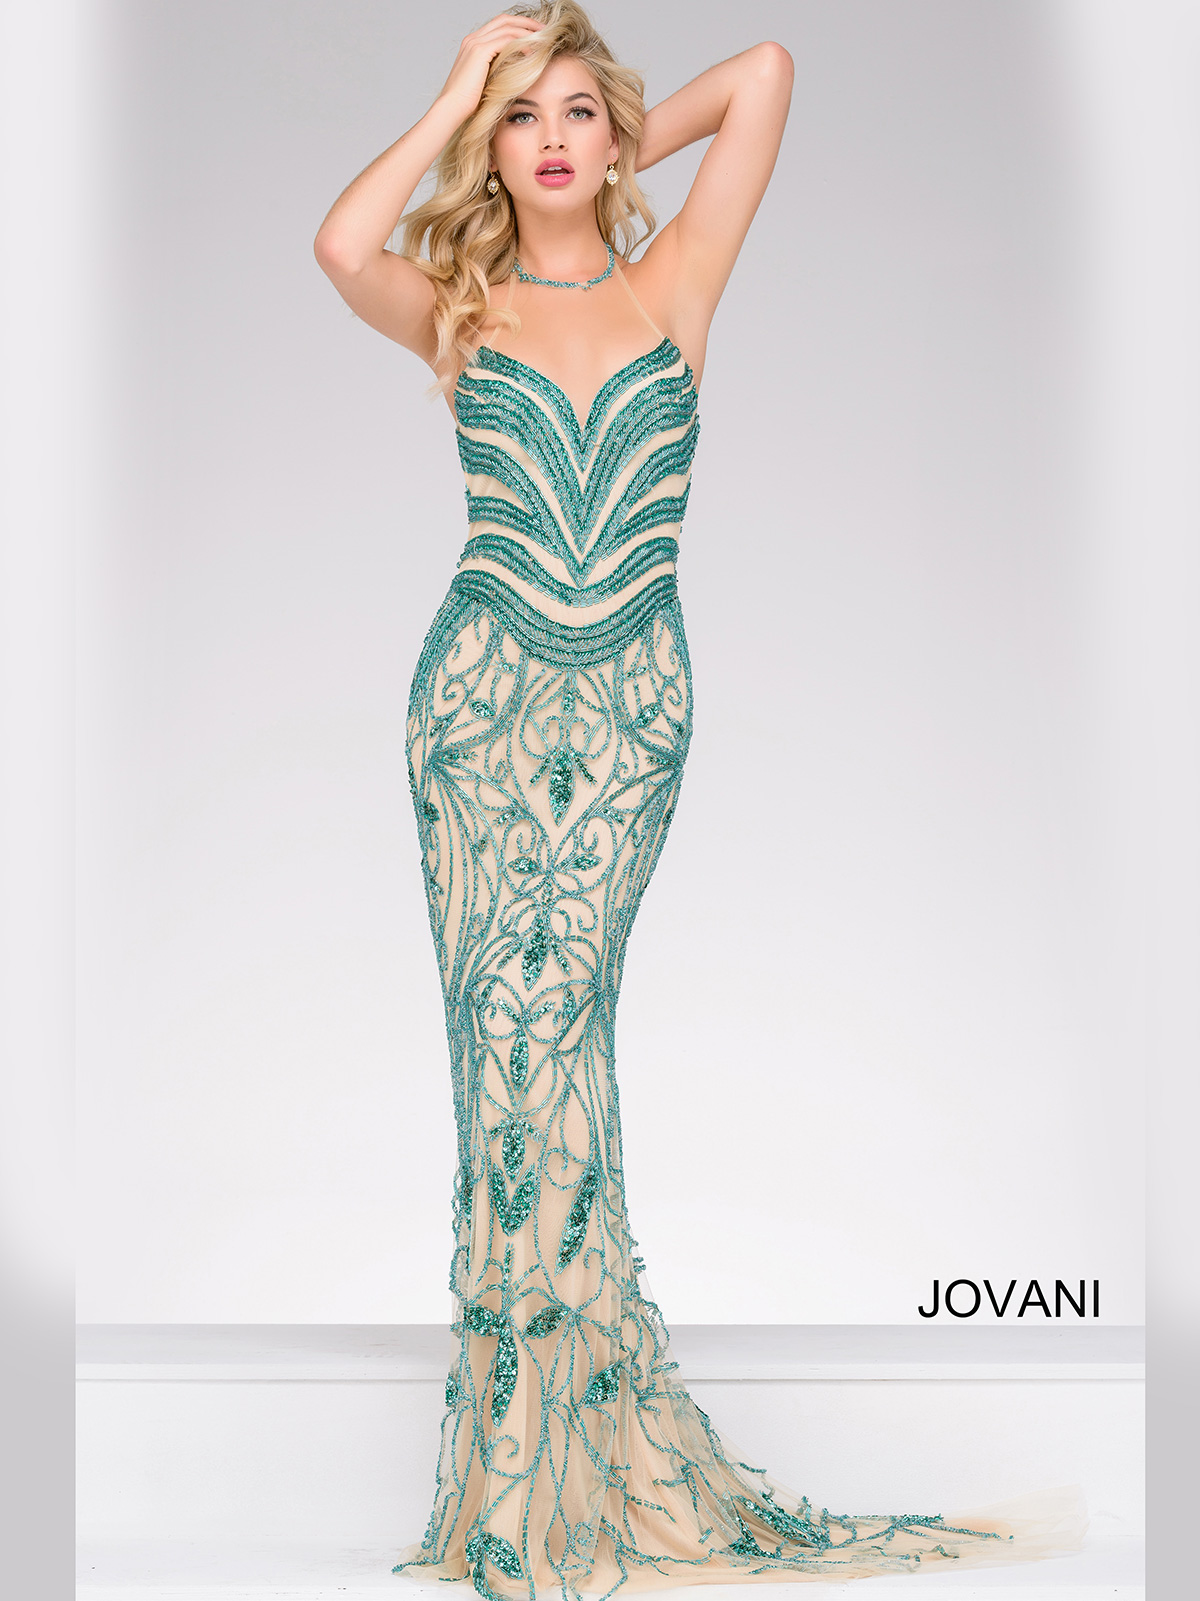 Jovani 37583 Fully Beaded Pageant Dress|PageantDesigns.com